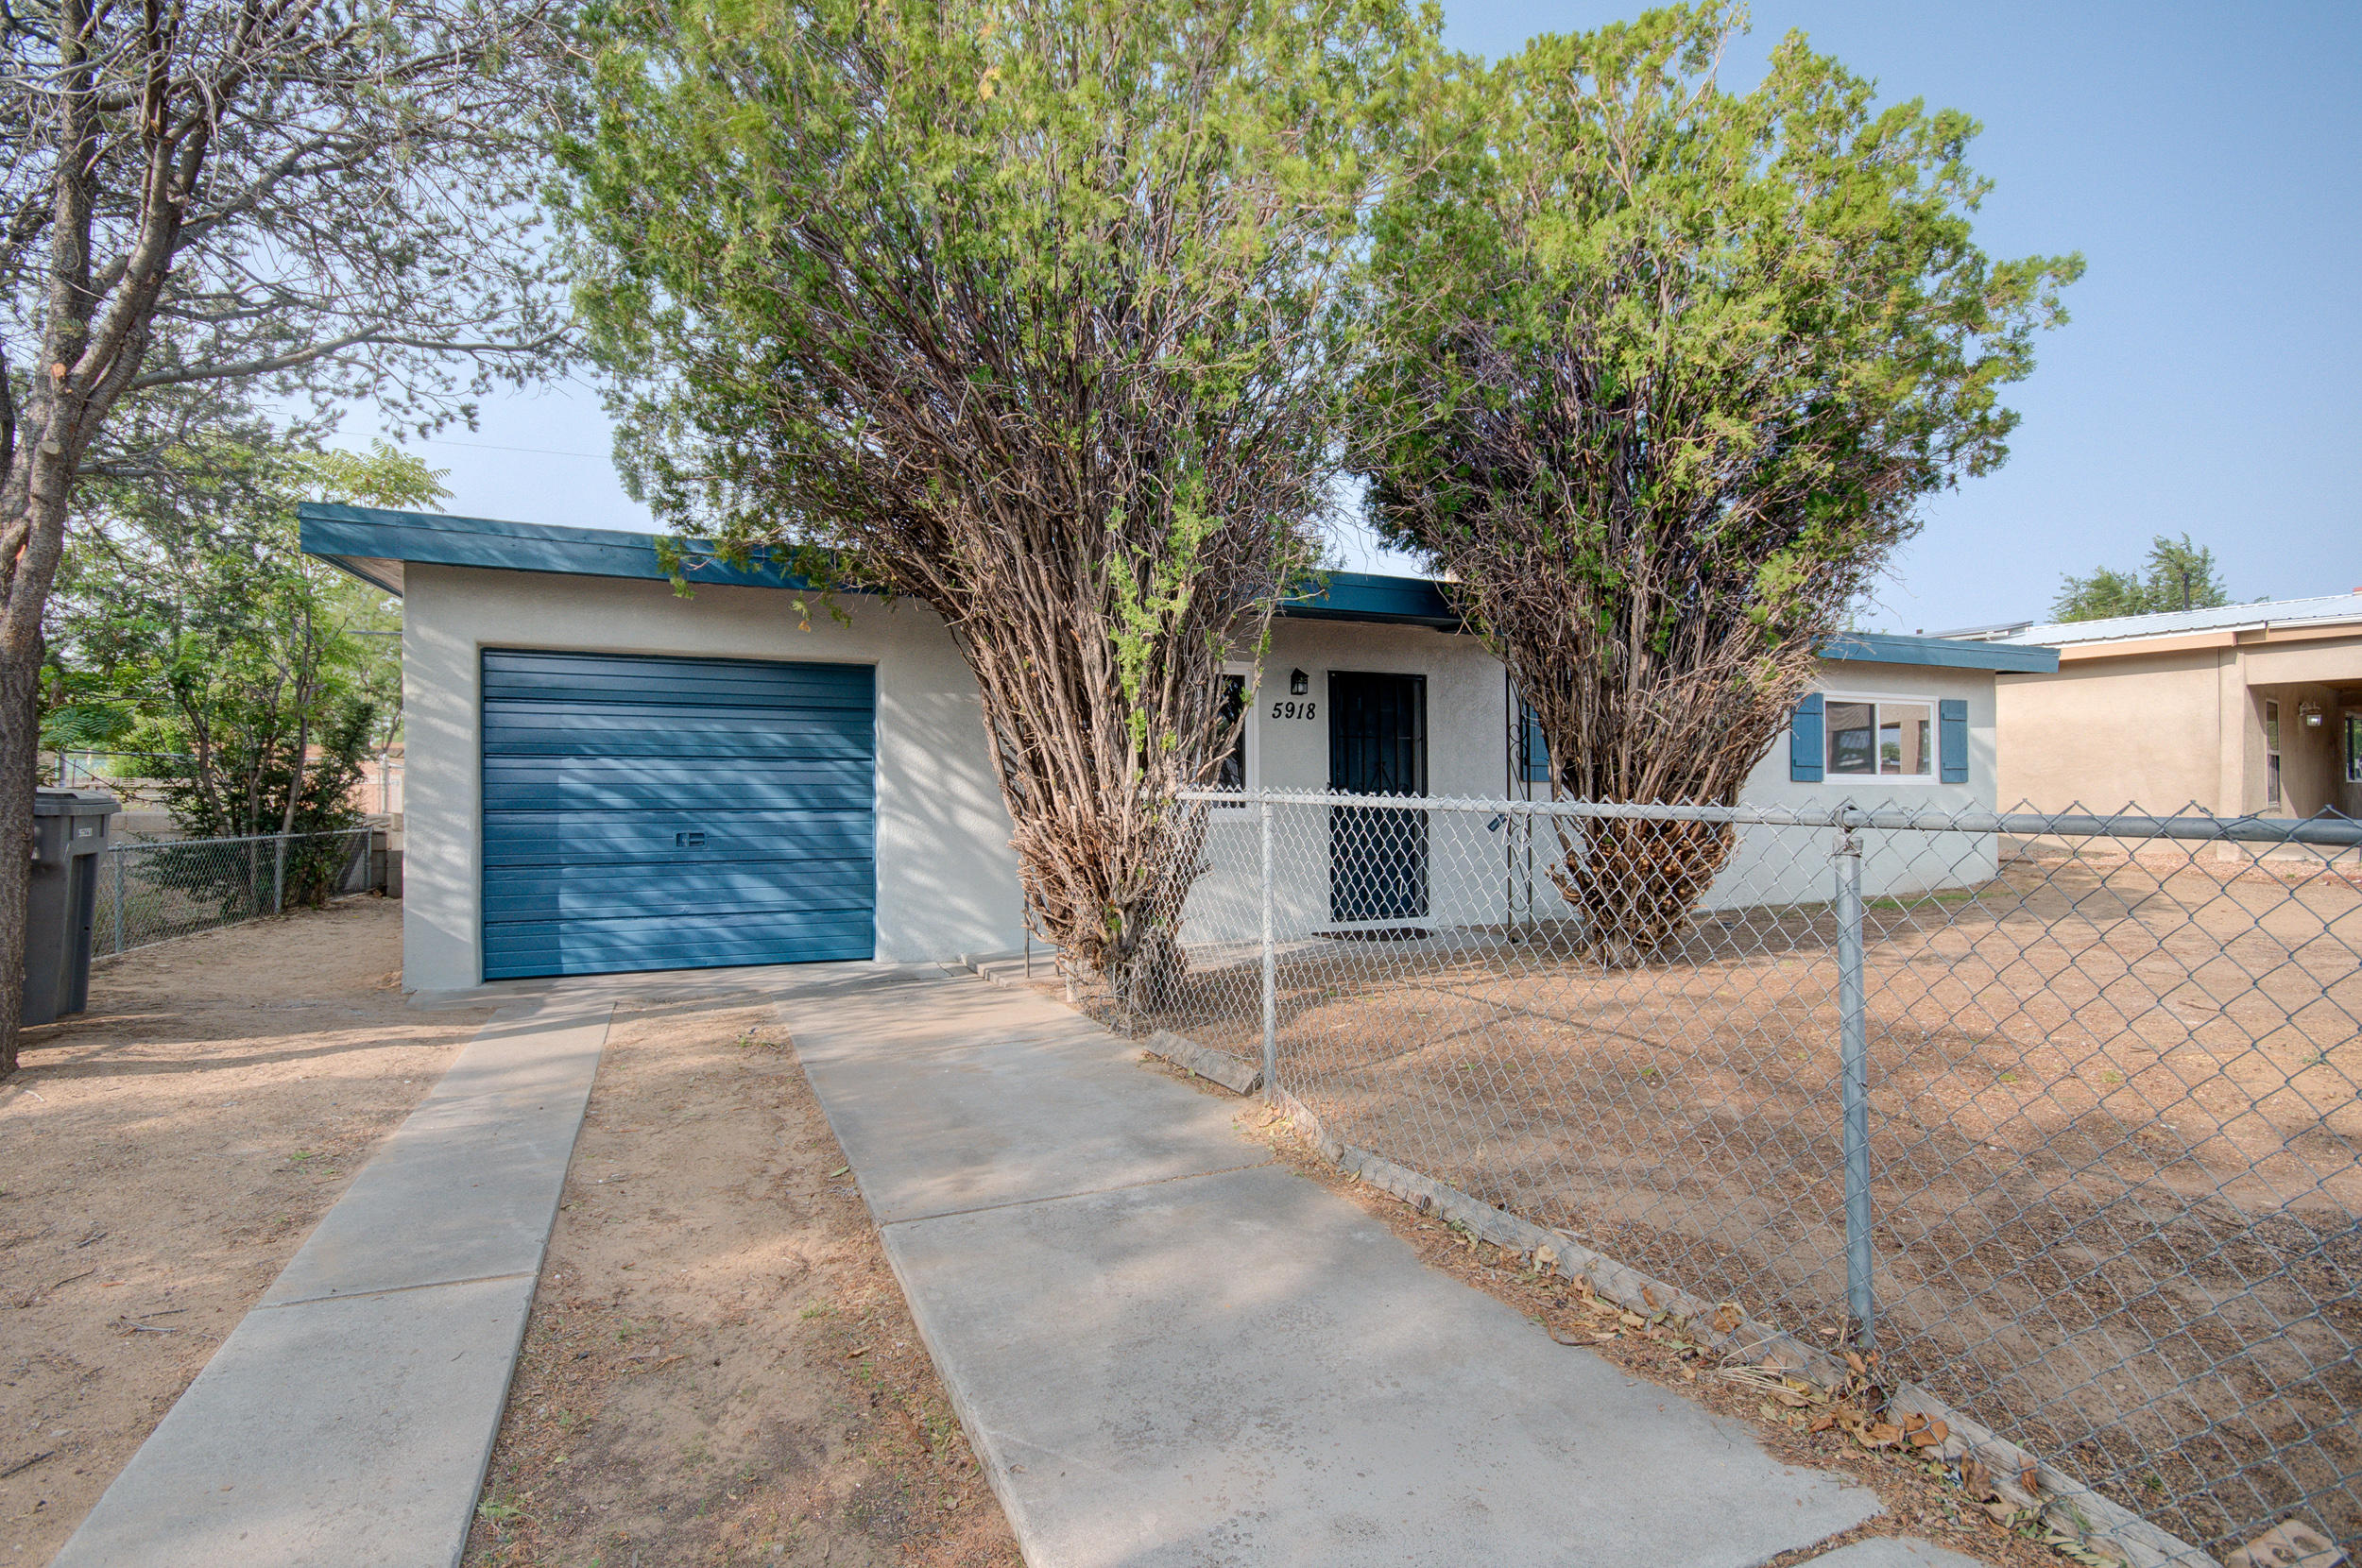 Welcome home to this move in ready, recently remodeled single owner home in Paradise Hills that features 3 bedrooms, 2 living areas and updates throughout. This beauty boasts a gorgeous brick fireplace, completely updated kitchen, new water heater, new cooler, new flooring throughout the house. Schedule a viewing today, this one will not last long!!